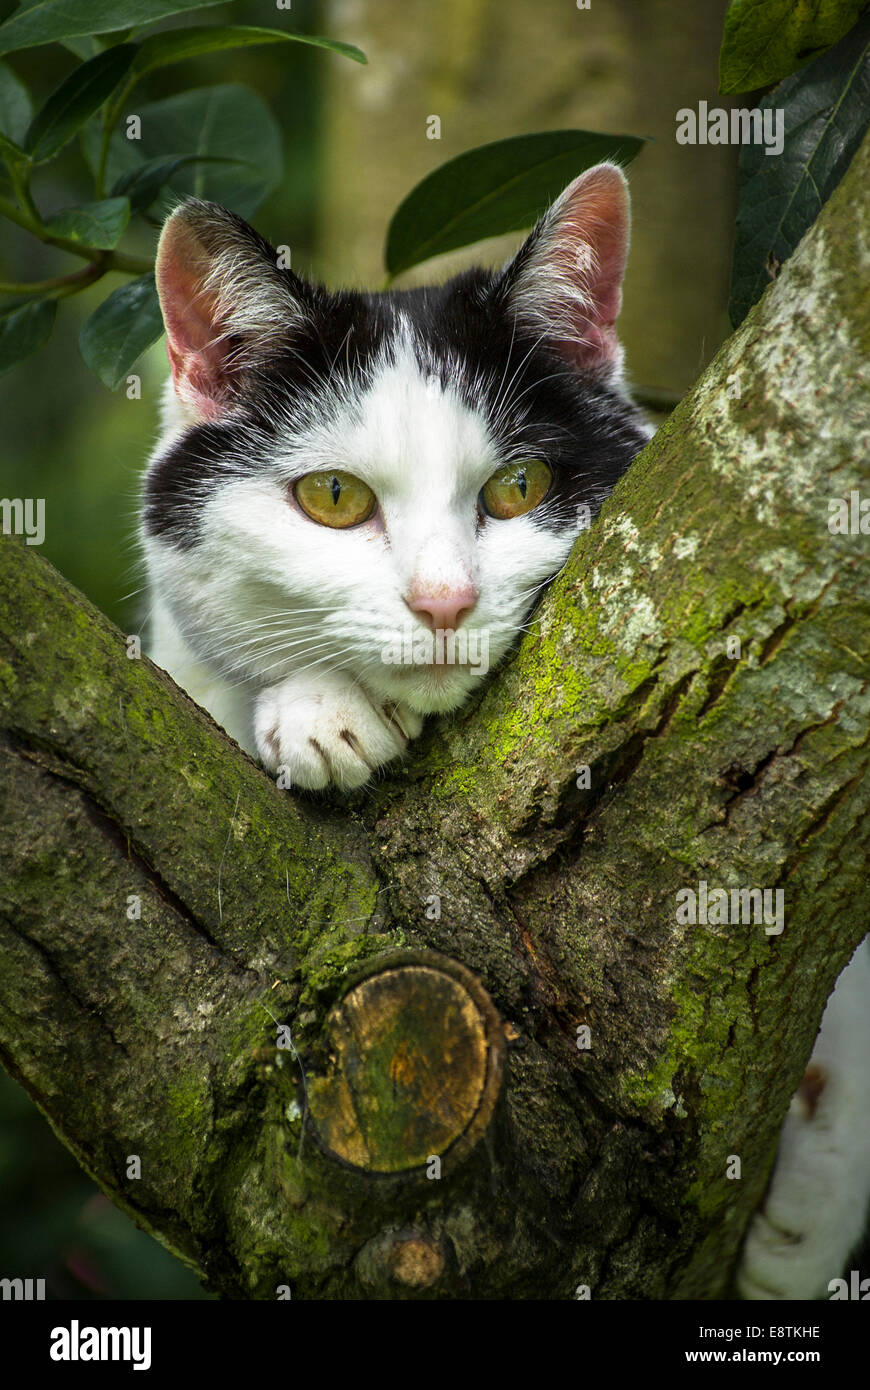 Black and white country cat stalking prey in a tree - Stock Image